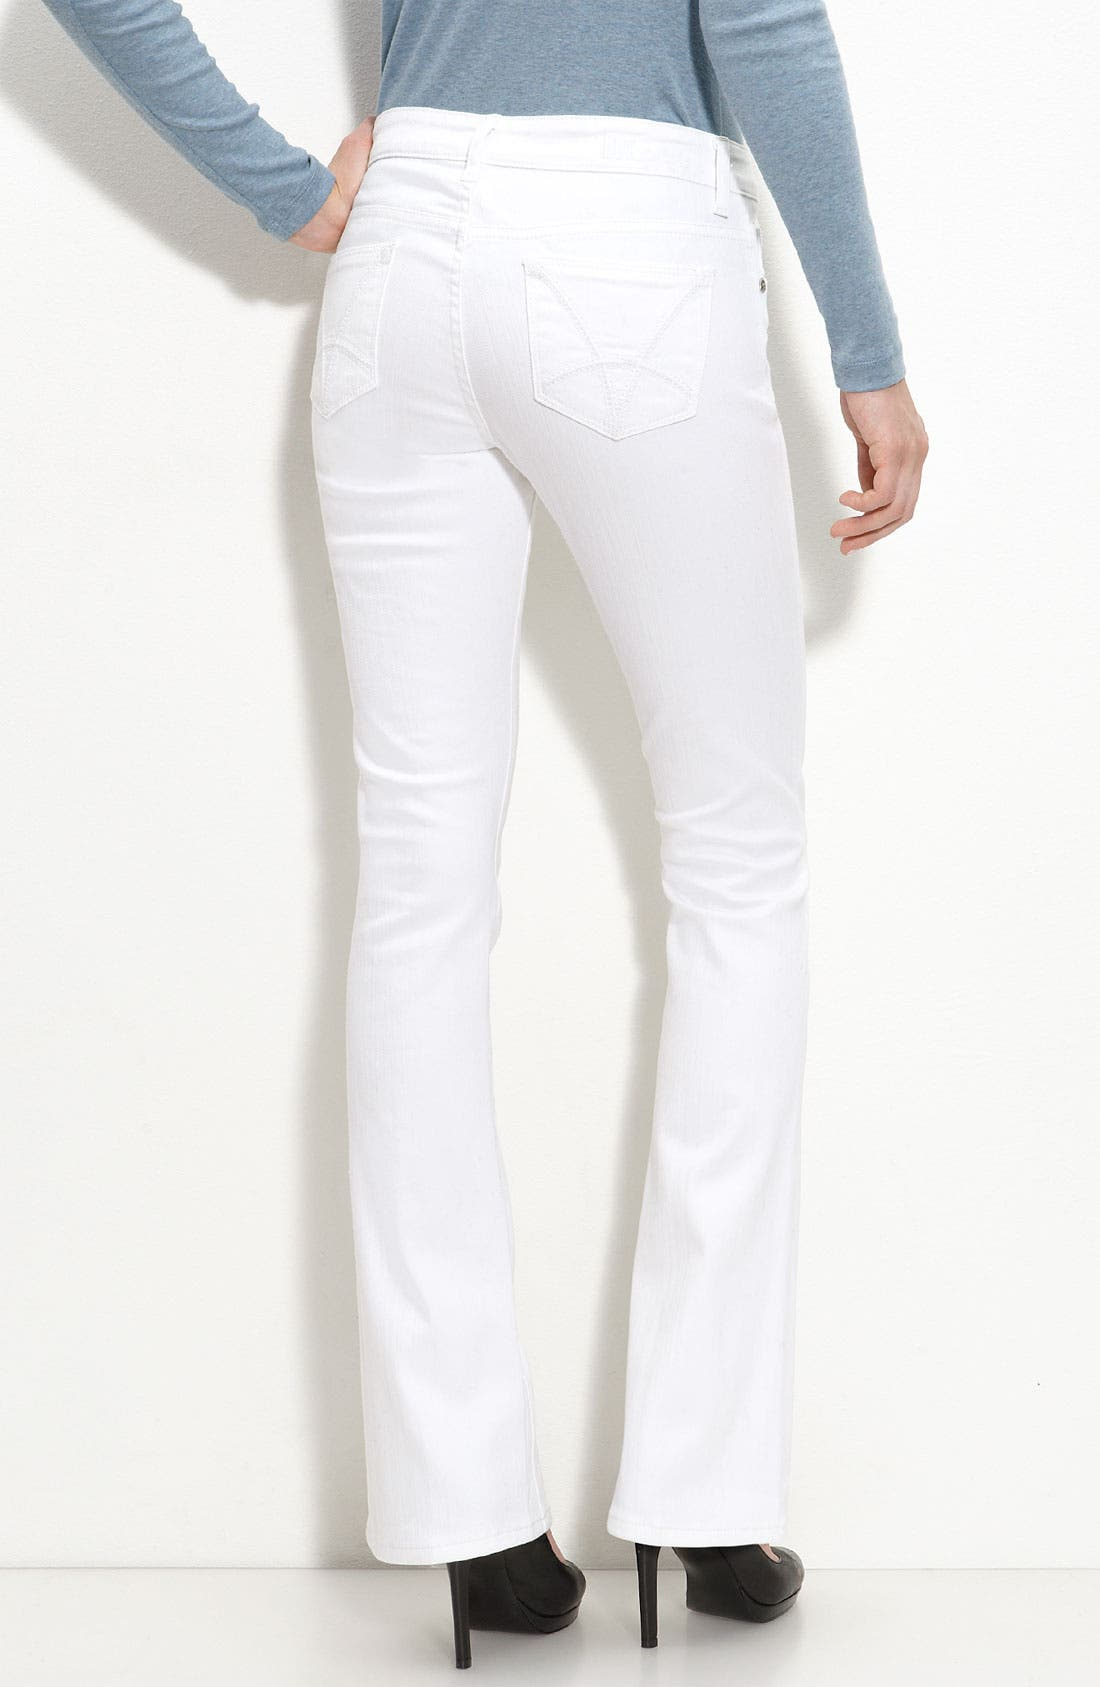 Alternate Image 1 Selected - KUT from the Kloth Baby Bootcut Jeans (White Wash)